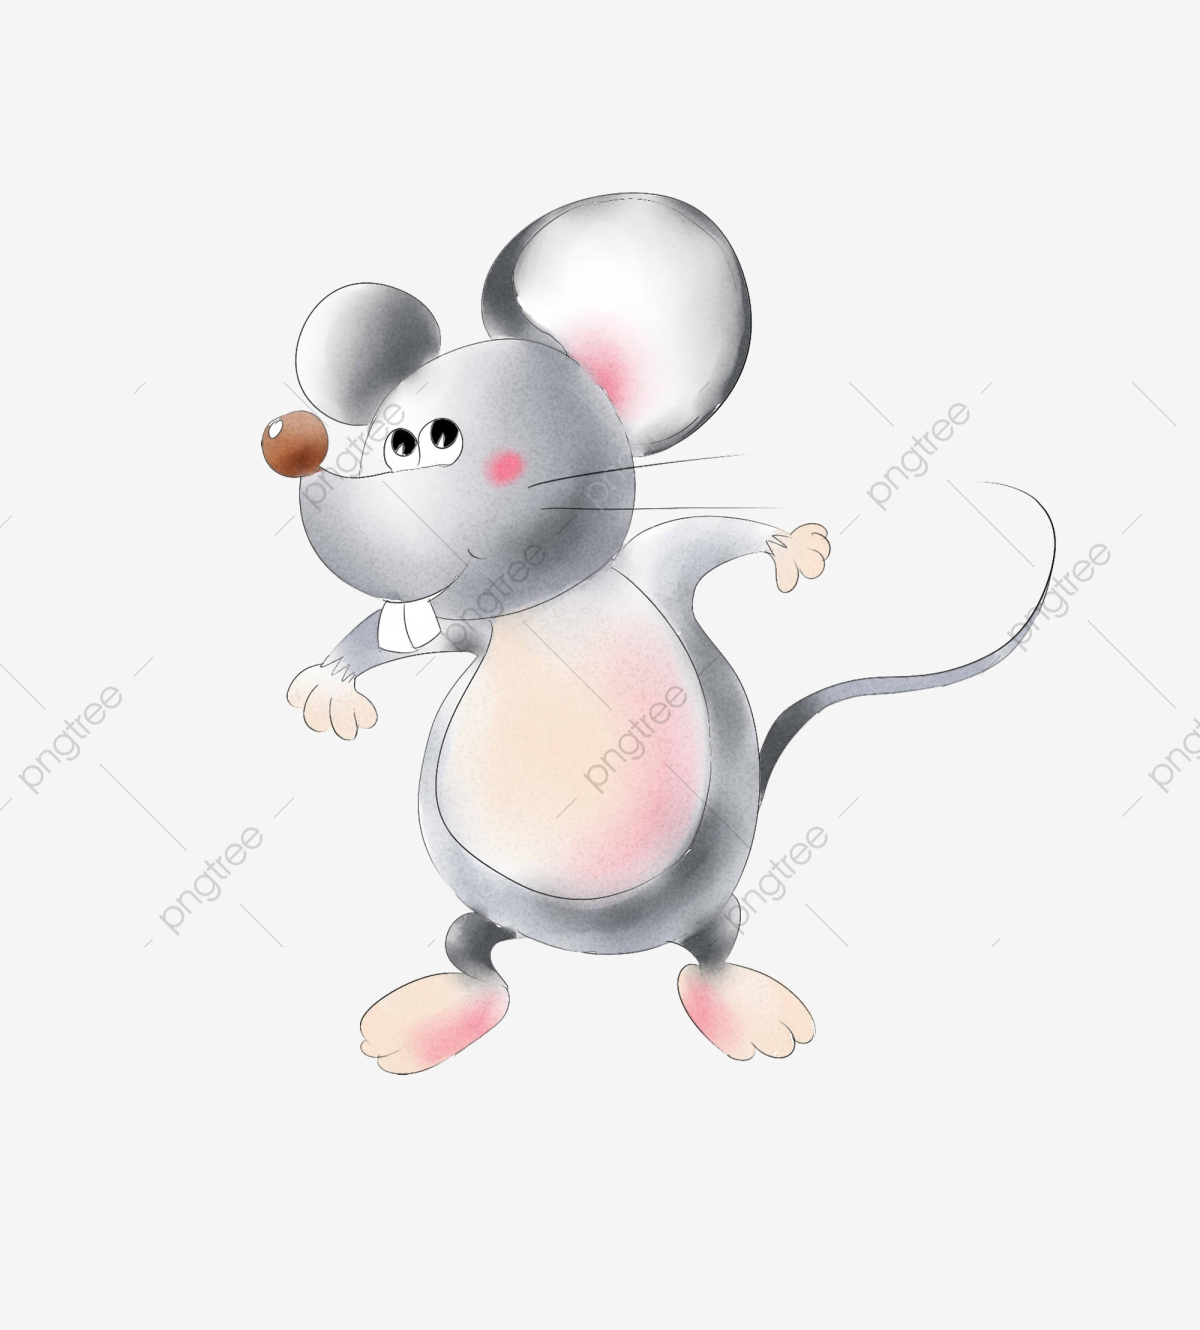 Clipart mouse illustration. Tantrum angry gray running